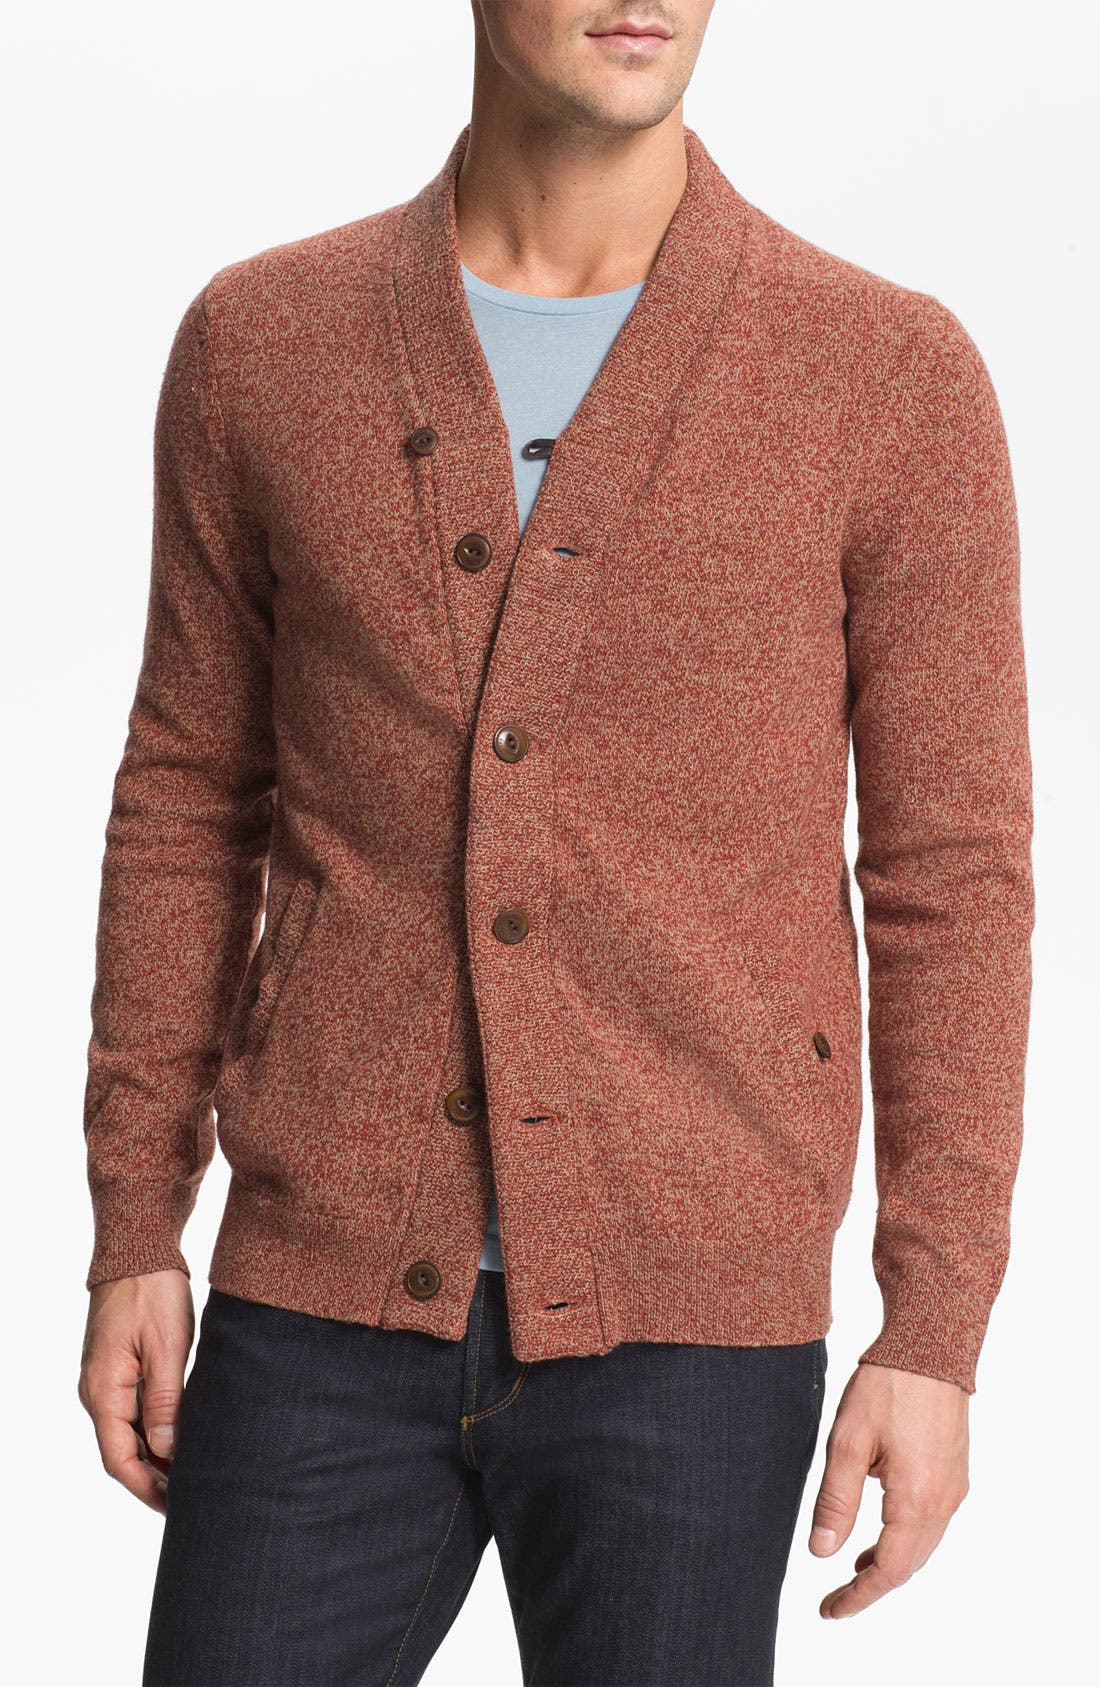 Alternate Image 1 Selected - Ted Baker London 'Brurinz' Shawl Collar Button Cardigan